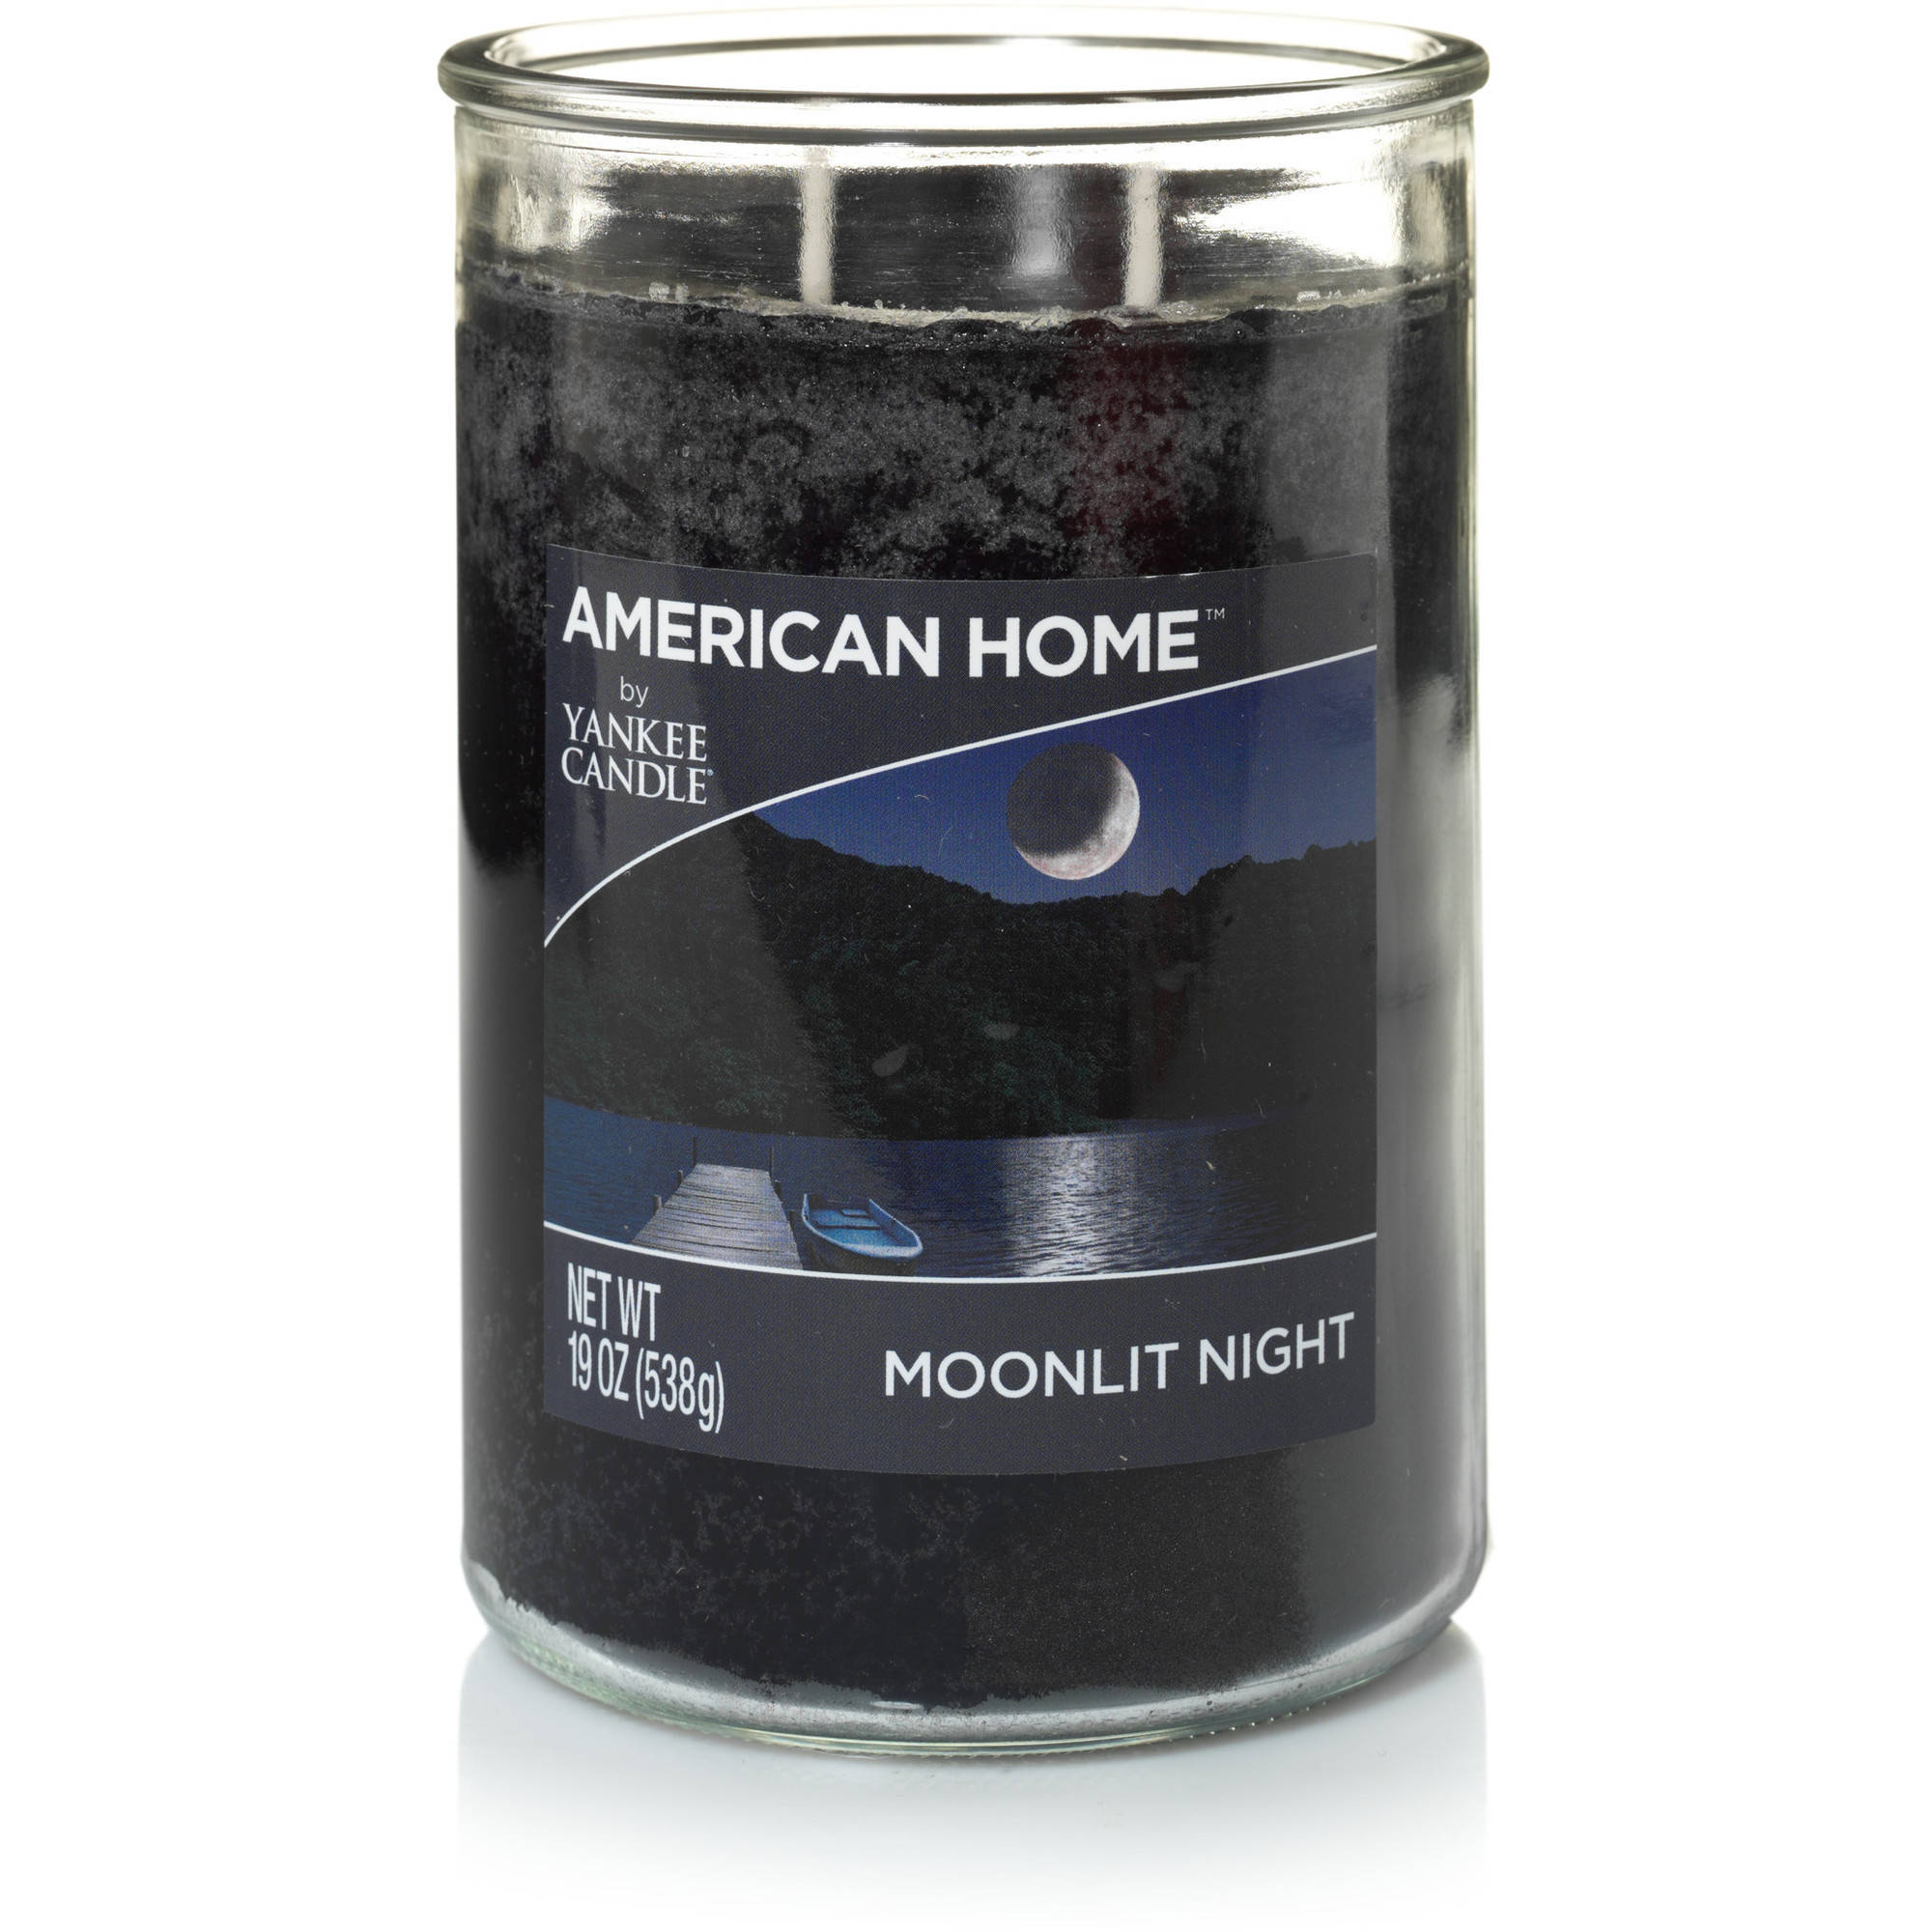 American Home by Yankee Candle Moonlit Night, 19 oz Large 2-Wick Tumbler